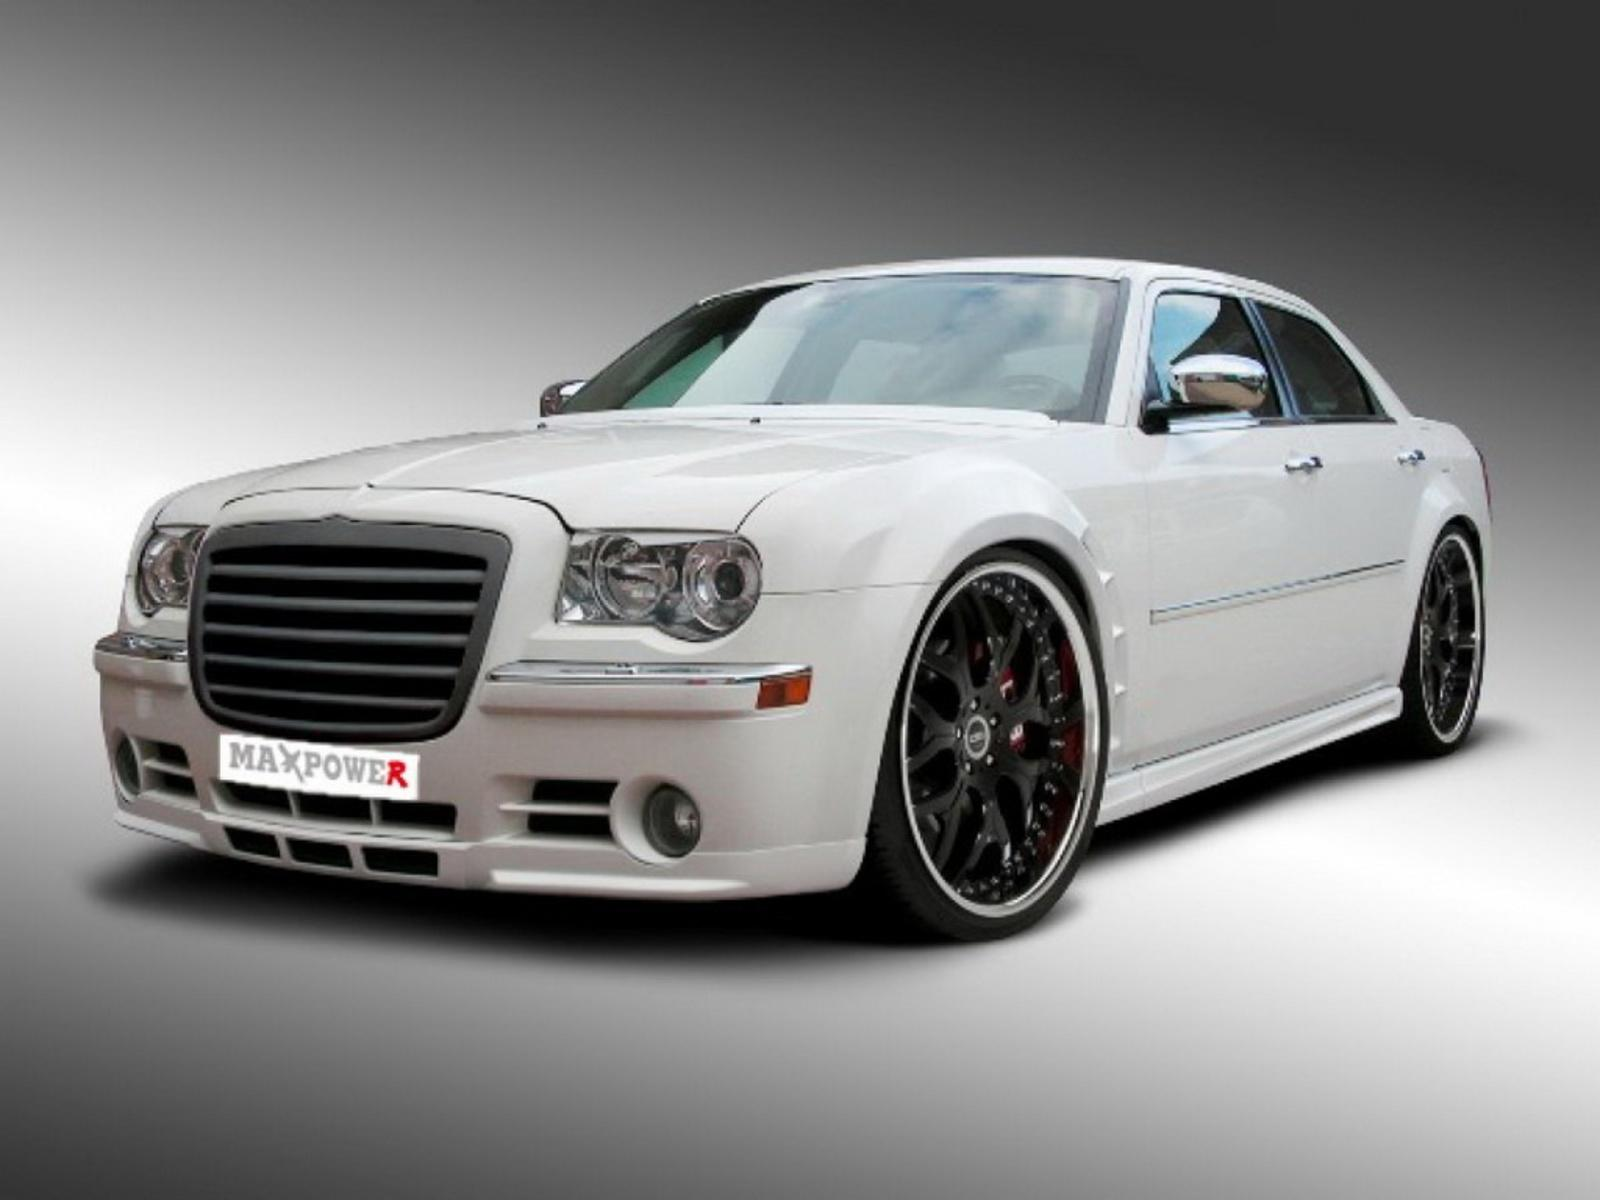 2010 chrysler 300c by maxpower review top speed. Black Bedroom Furniture Sets. Home Design Ideas